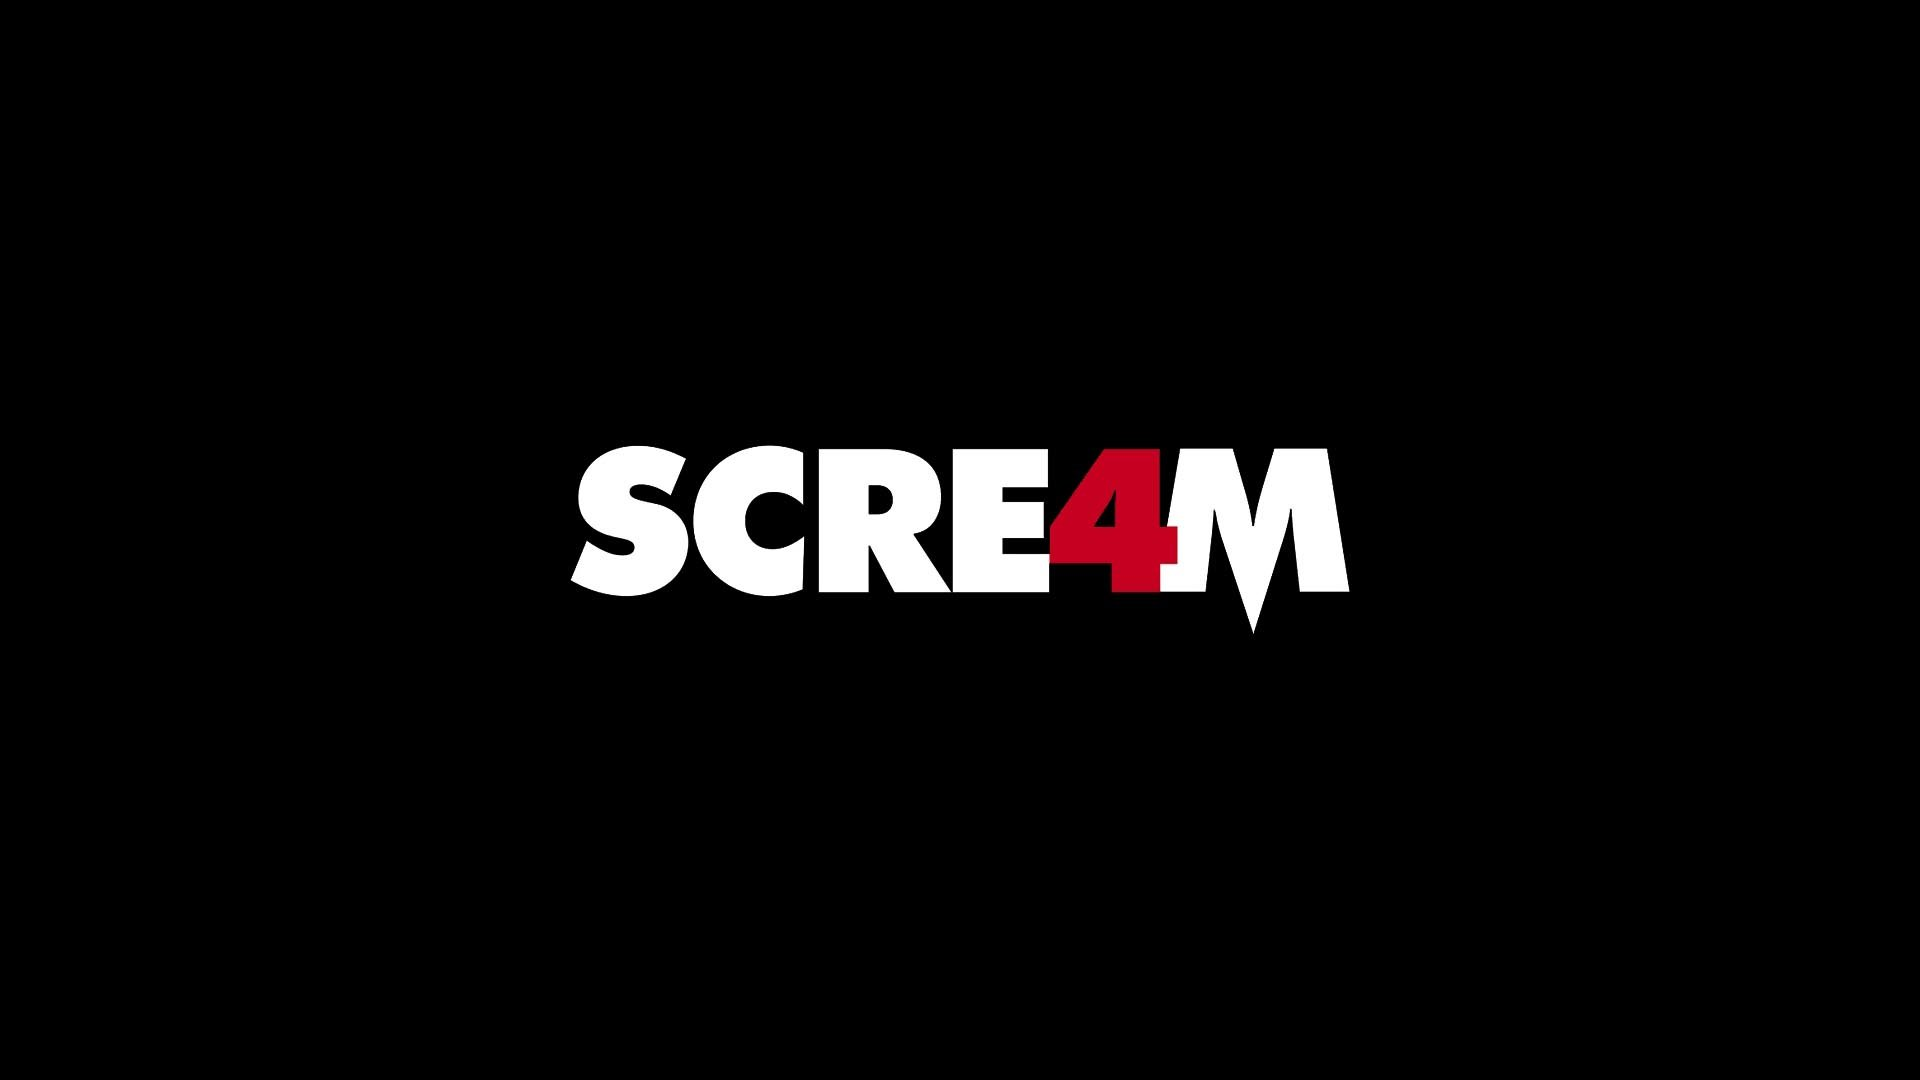 High Resolution Scream 4 Hd 1920x1080 Wallpaper Id27092 For